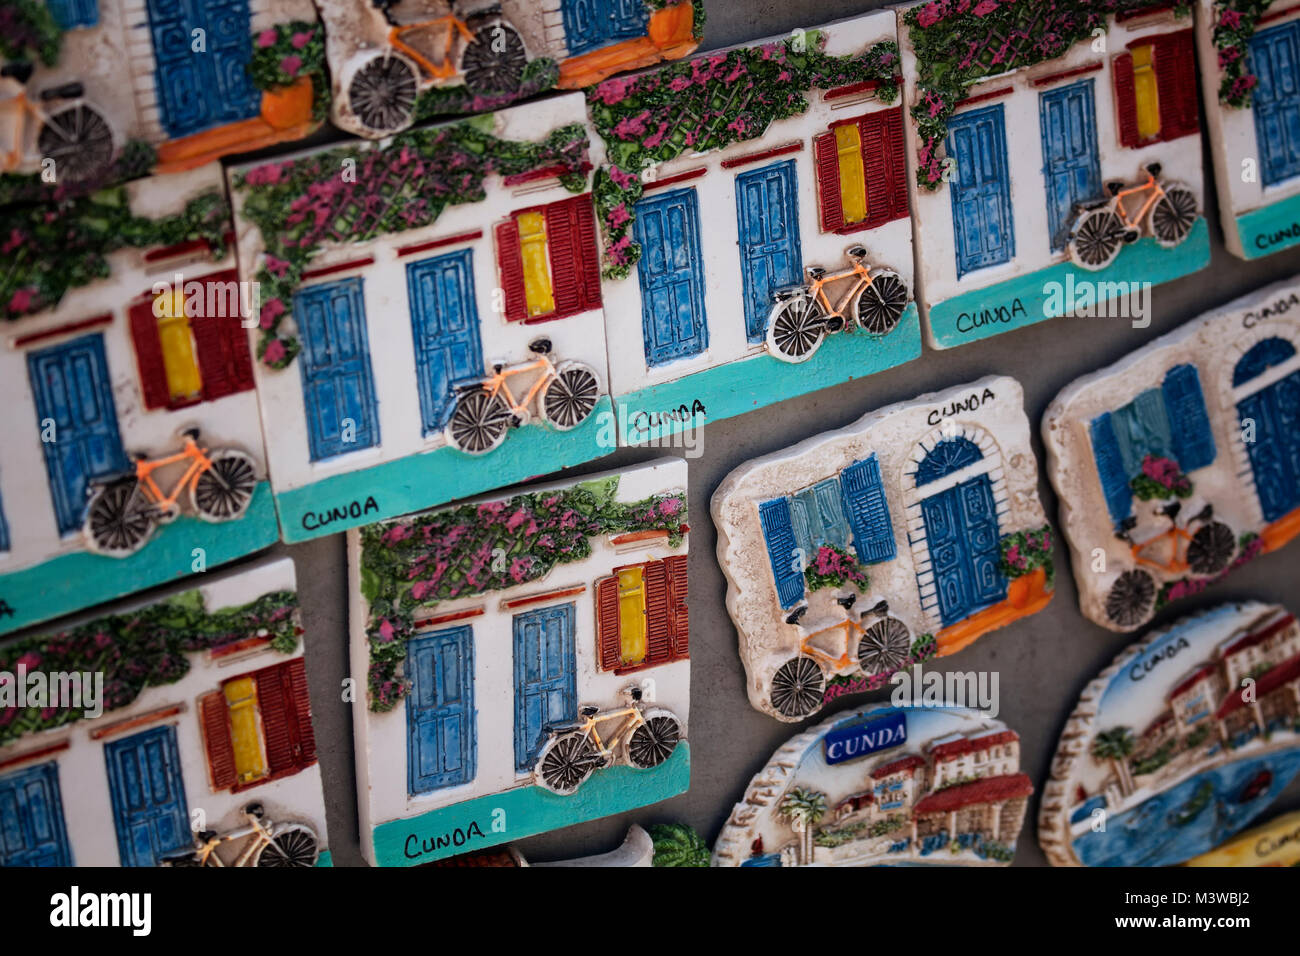 Close up view of many stone souvenirs of Cunda (Alibey) island. - Stock Image